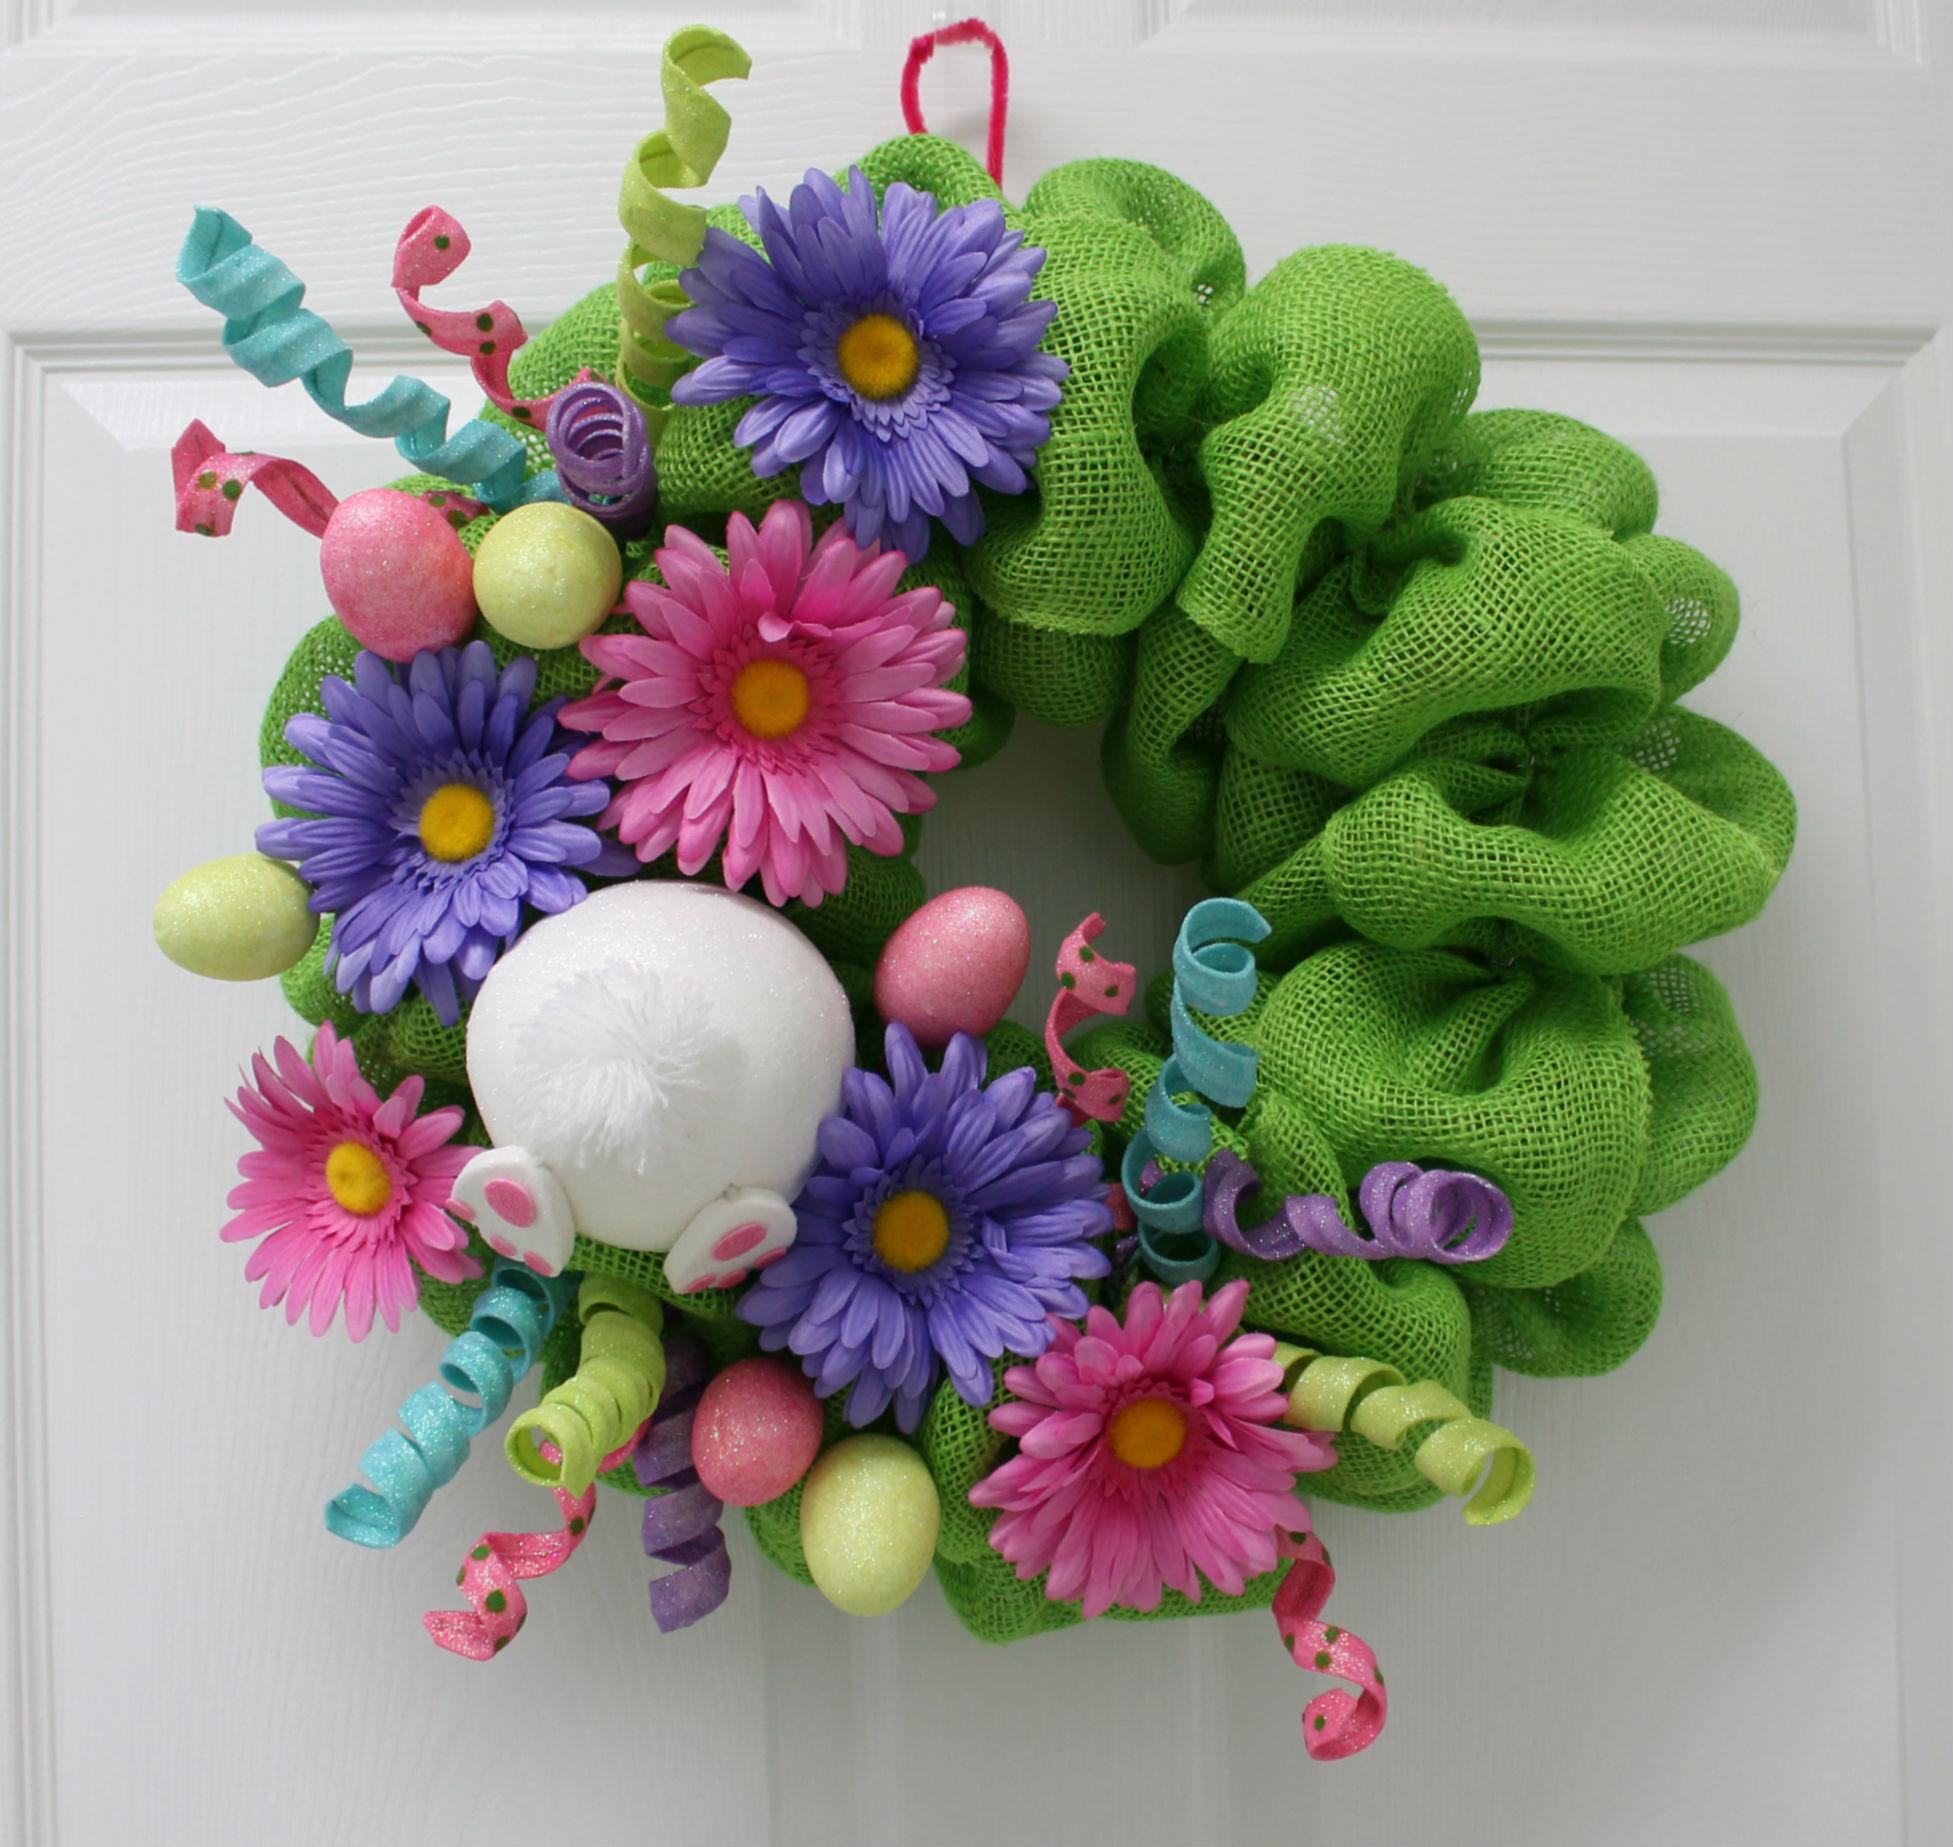 Diy burlap easter wreath the wreath depot for How to make door wreaths for spring